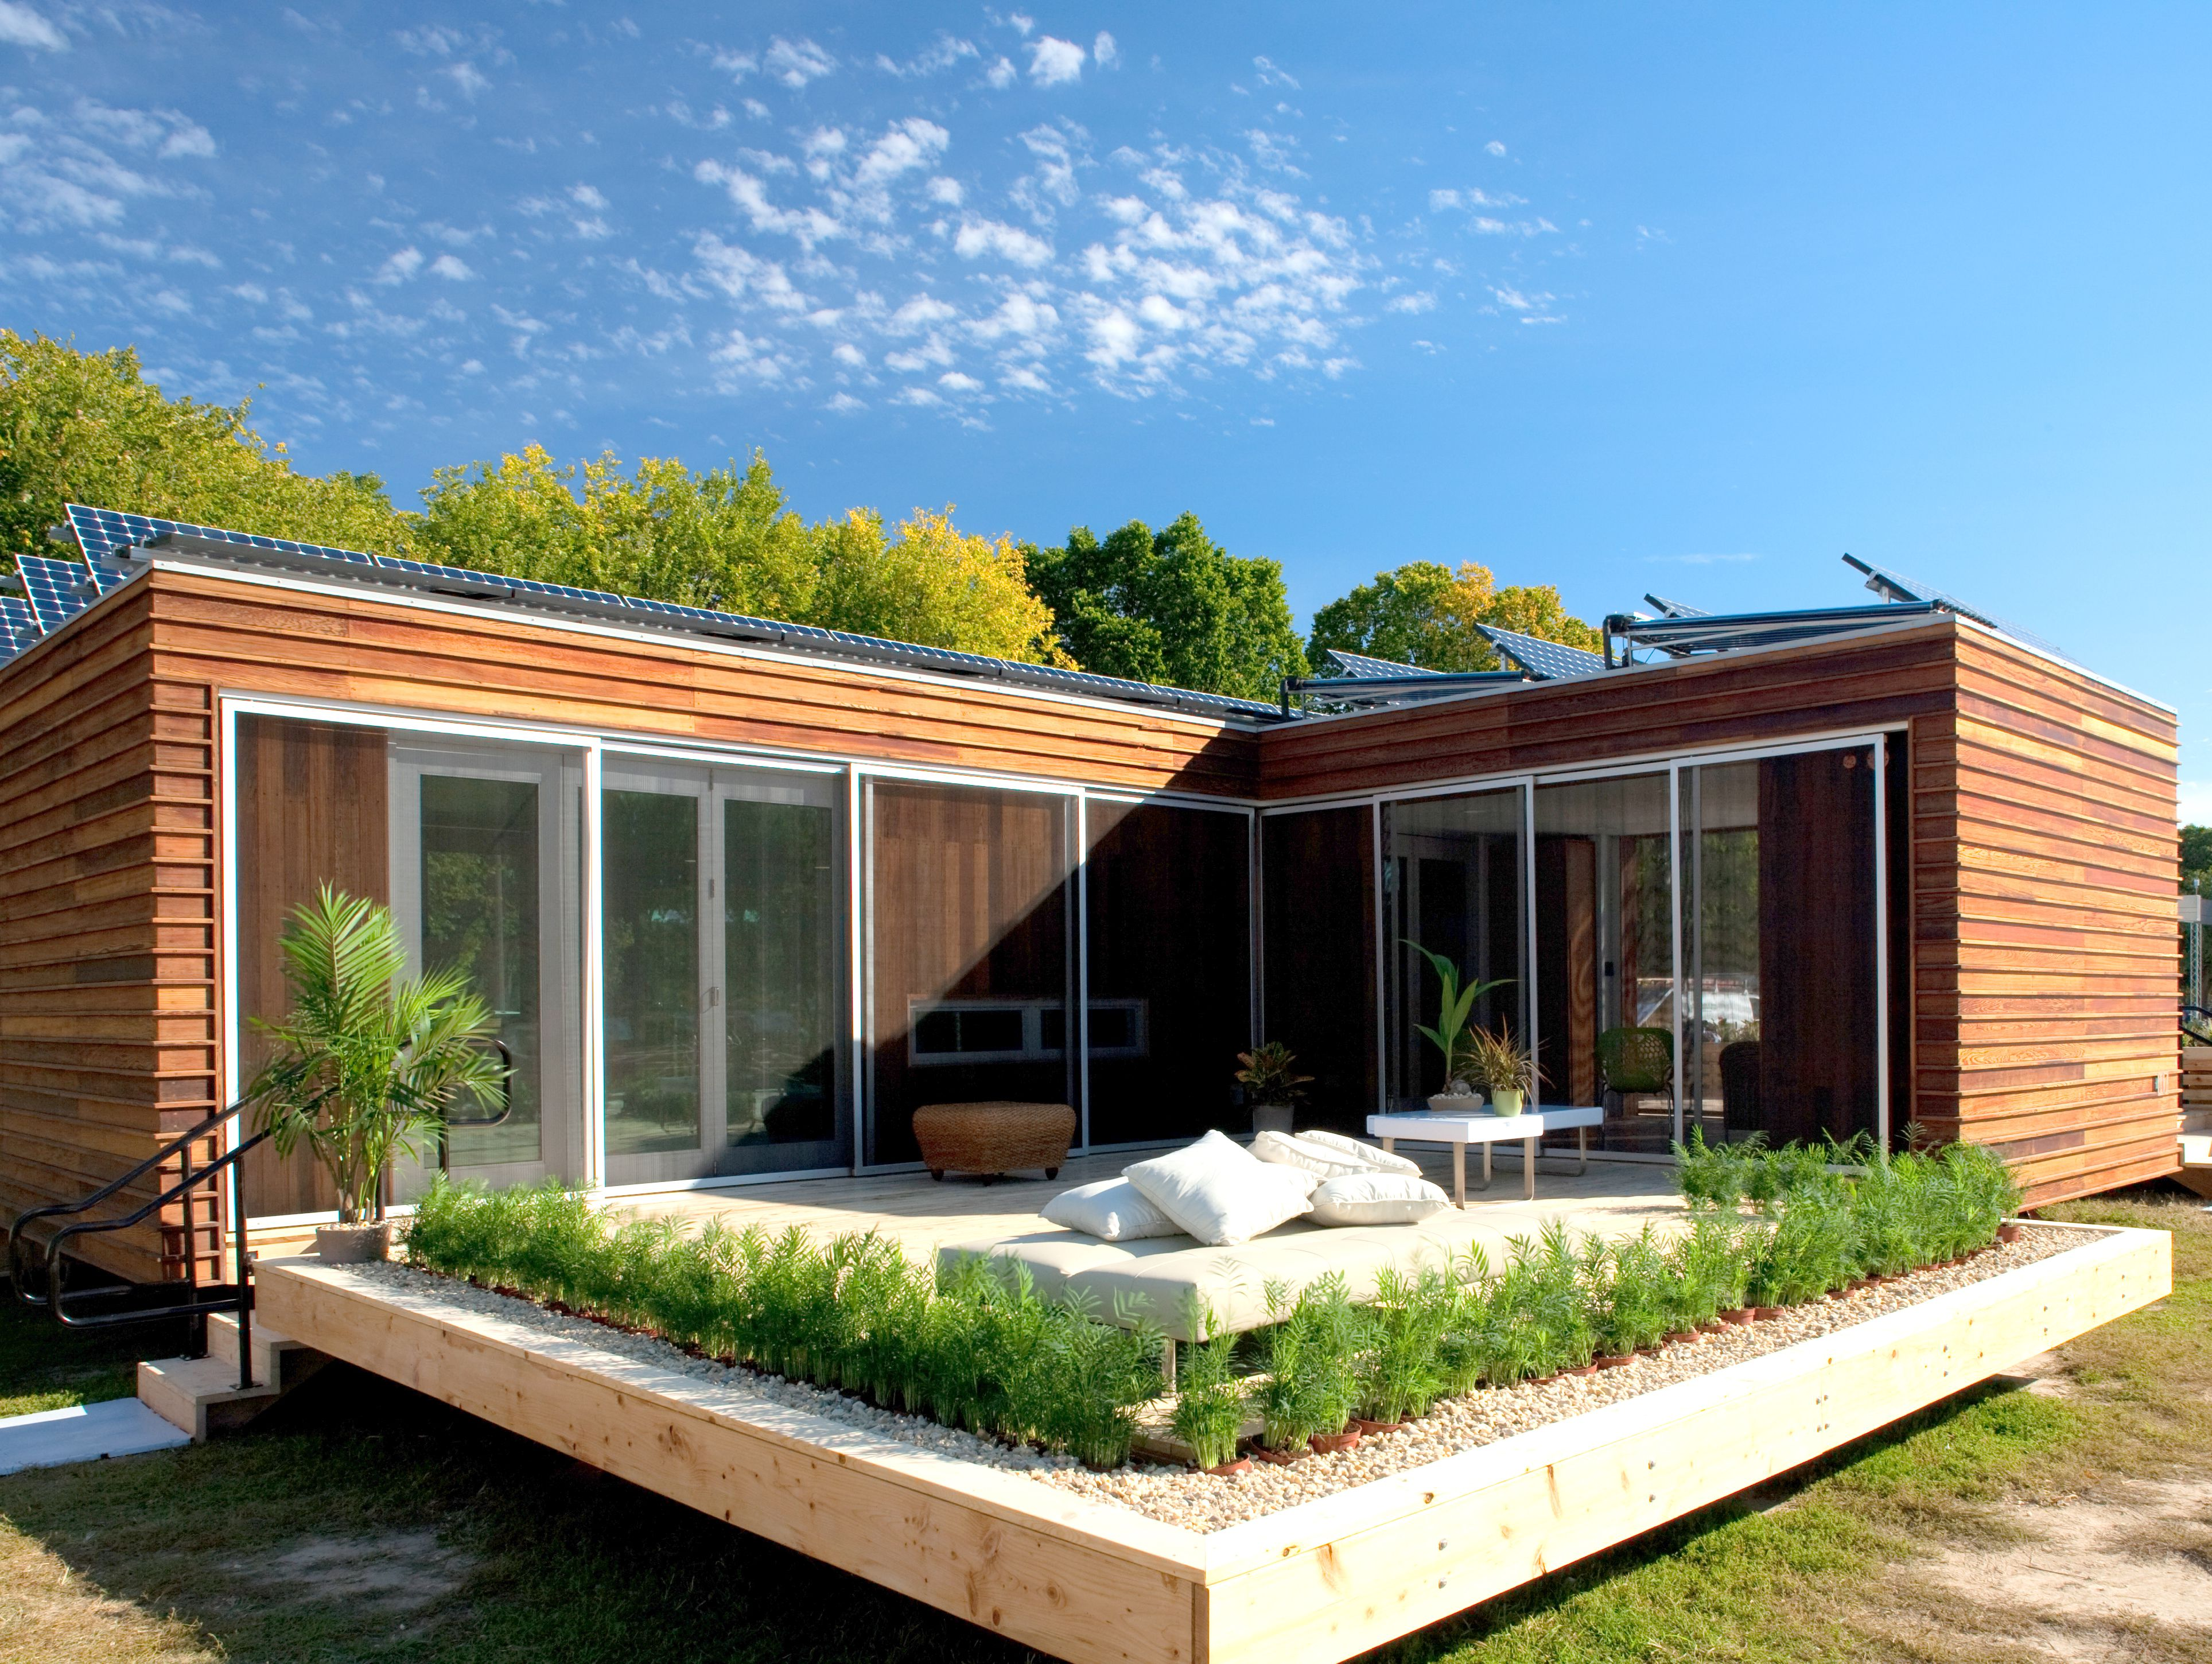 Design house 20x50 - 5 Budget Friendly Tips For Building Or Renovating A Green Home